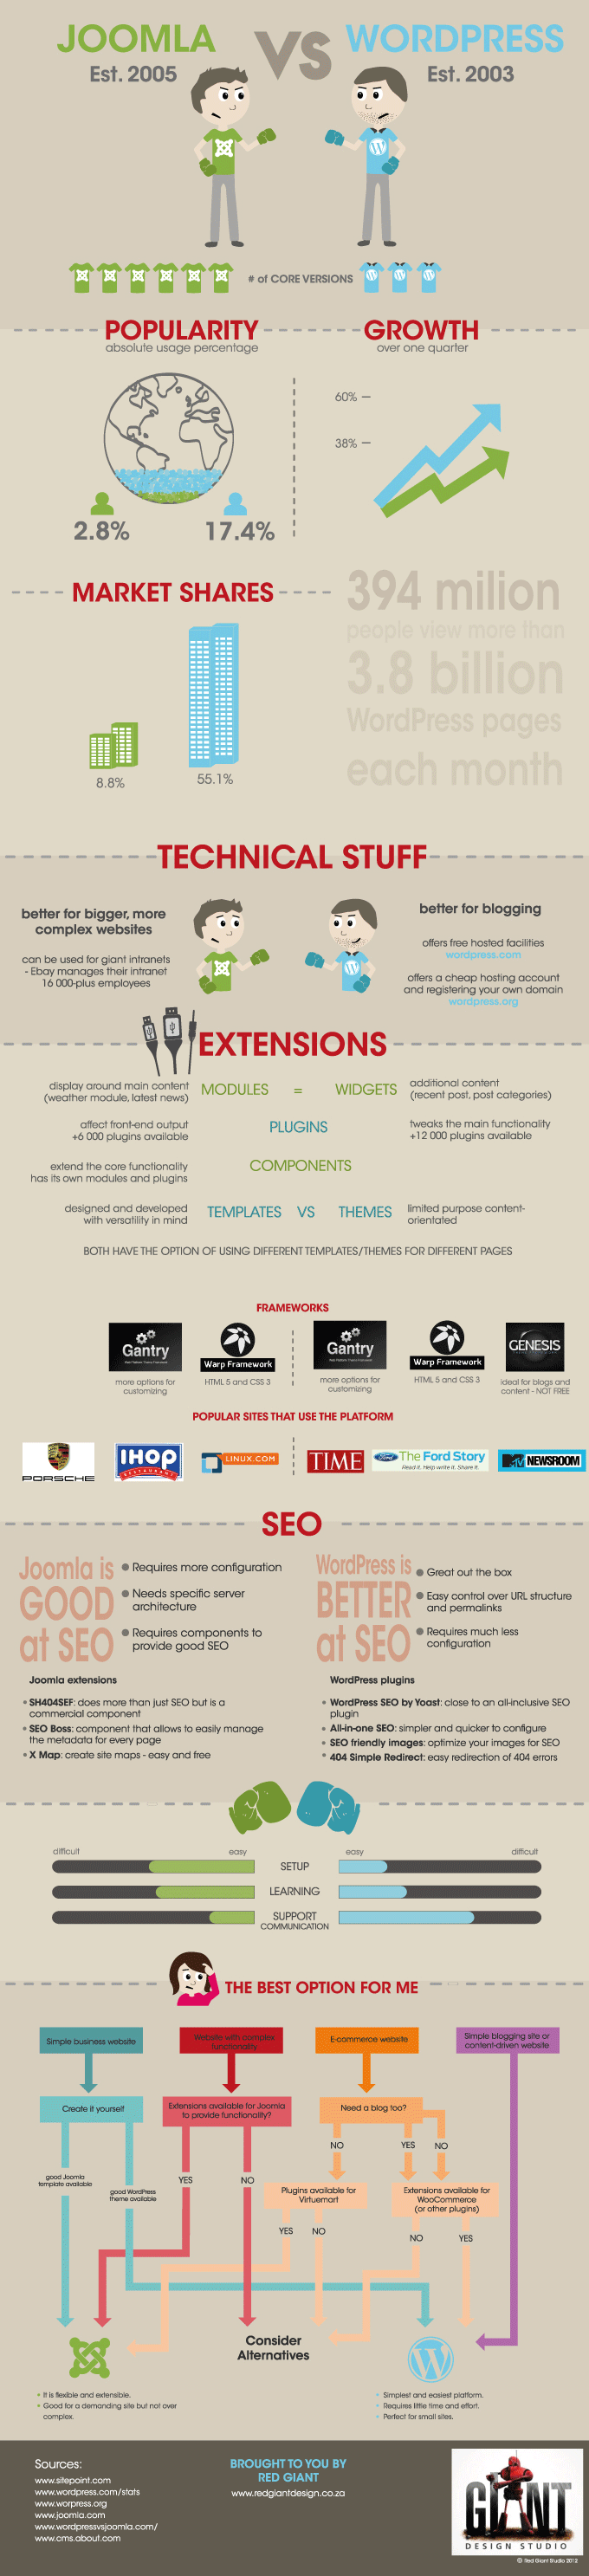 Comparison Between Joomla and WordPress